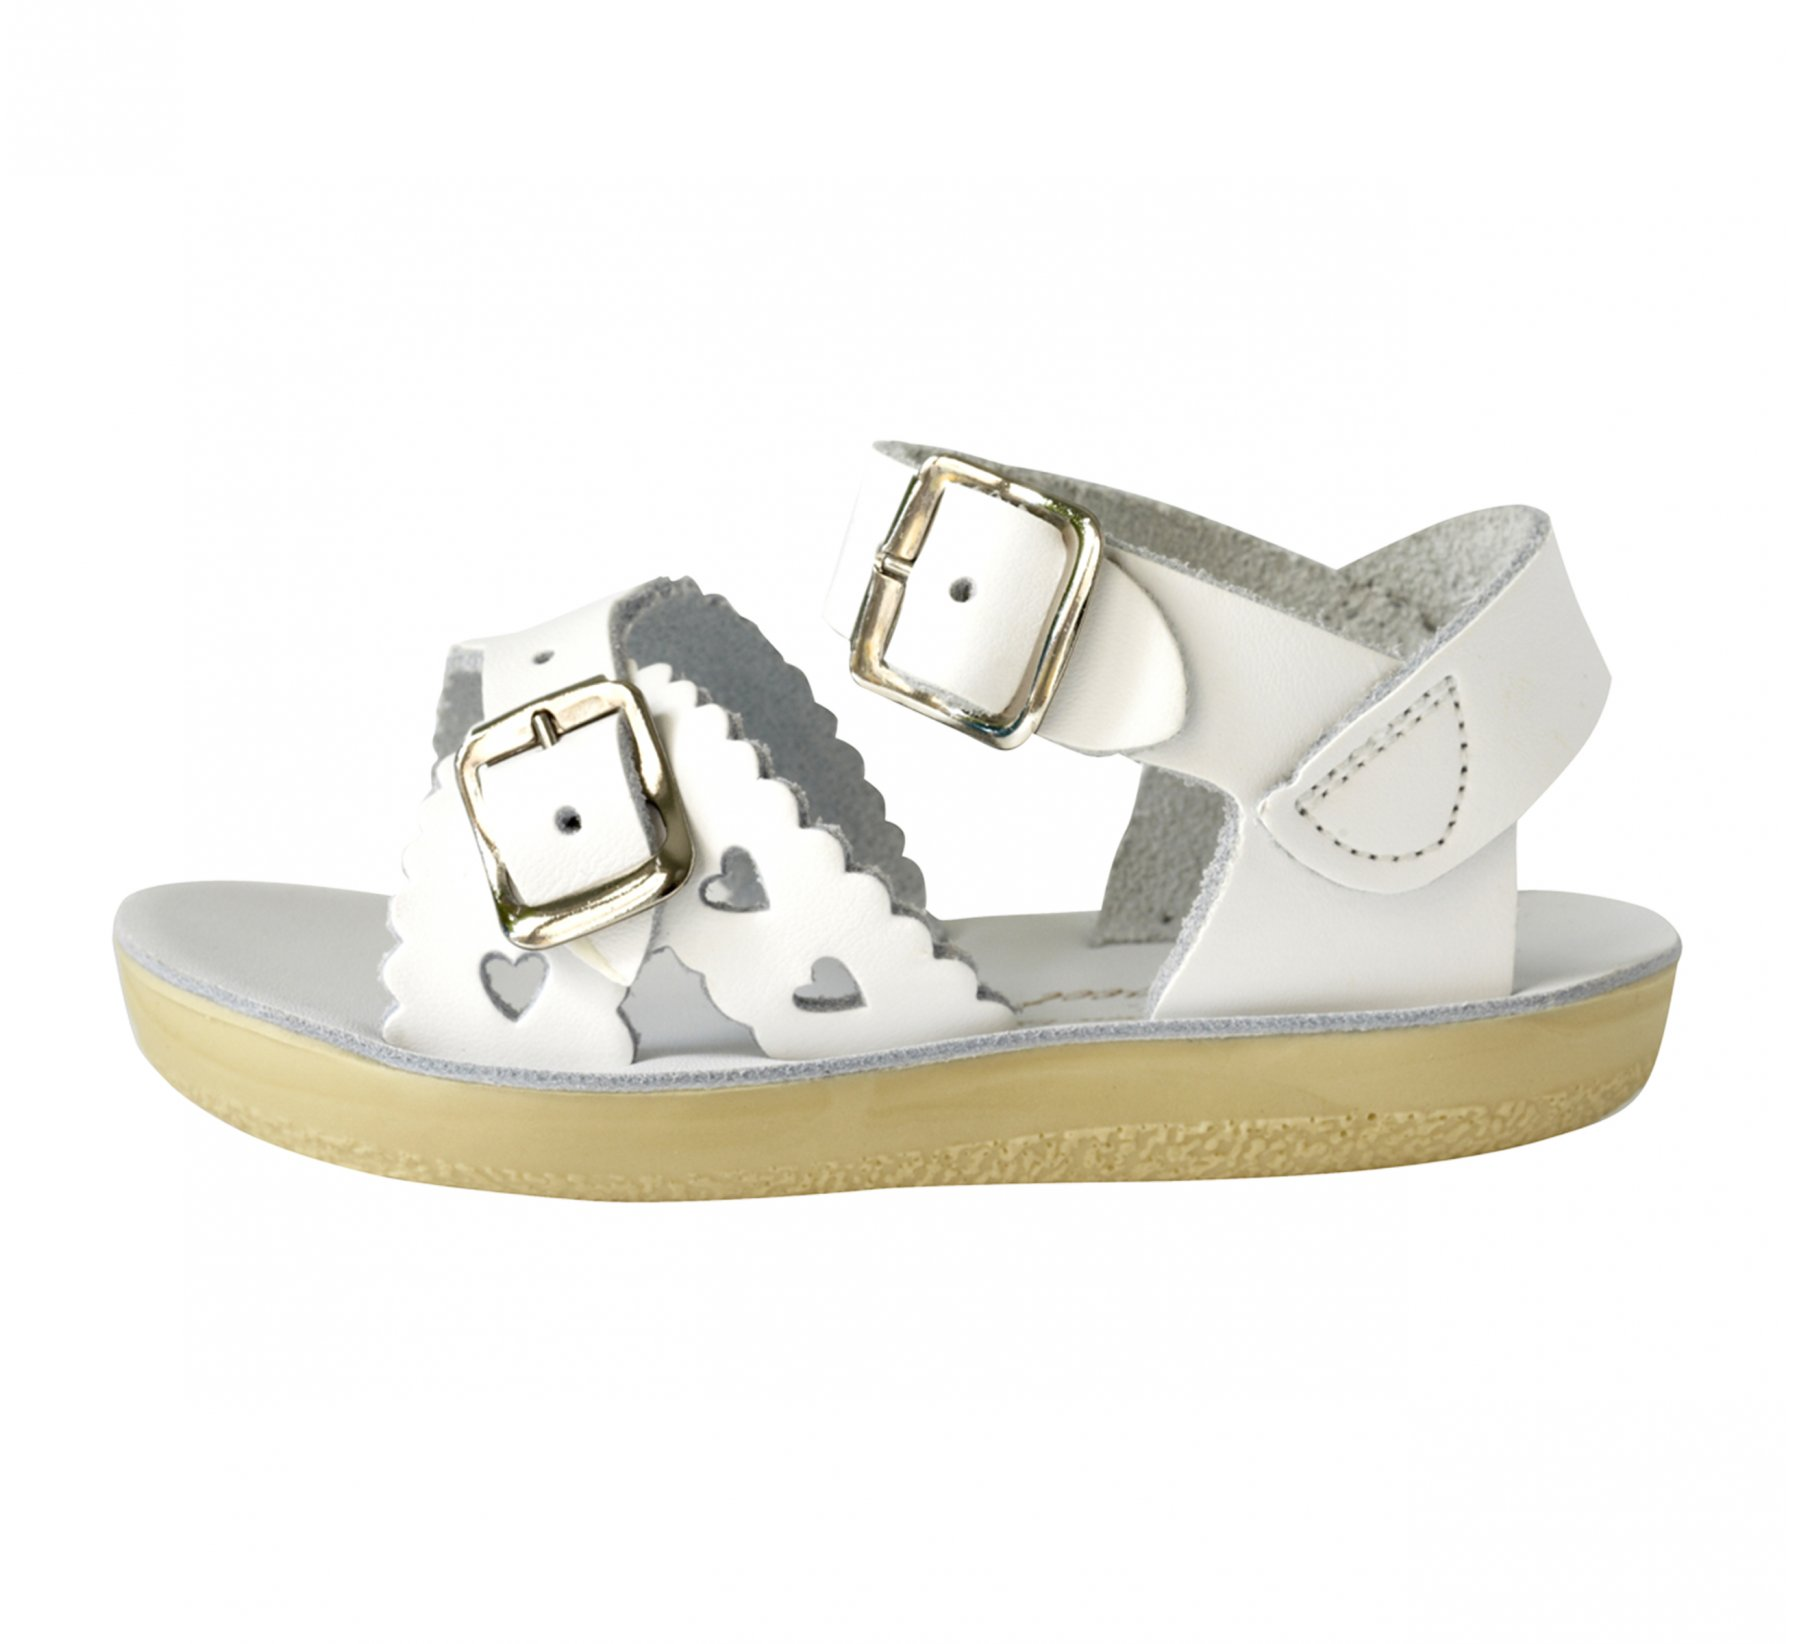 Sweetheart Putih - Salt Water Sandals